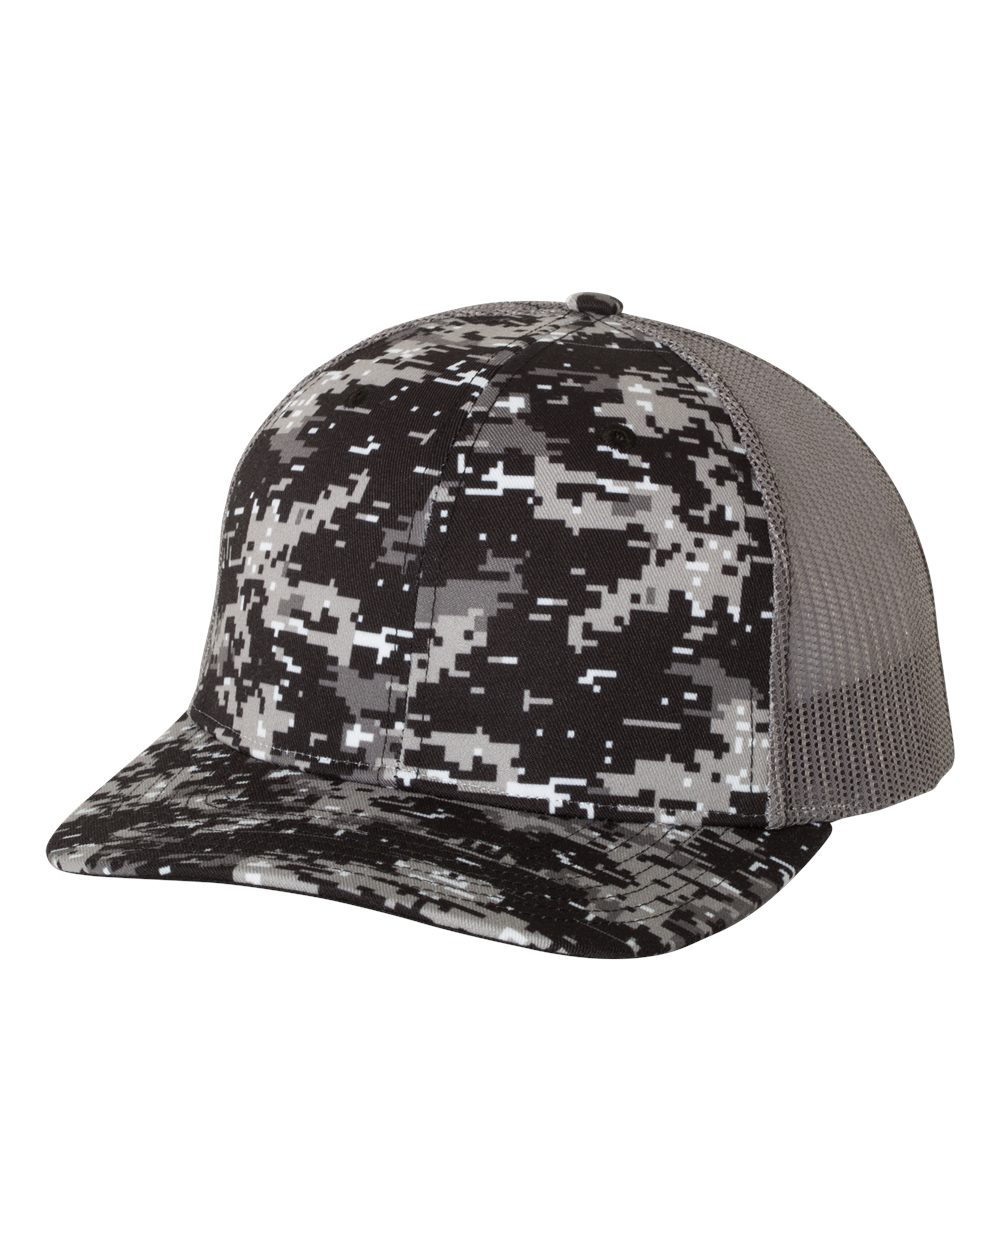 3a53f616f61f3 Richardson 112P - Patterned Snapback Trucker Cap  6.00 - Headwear